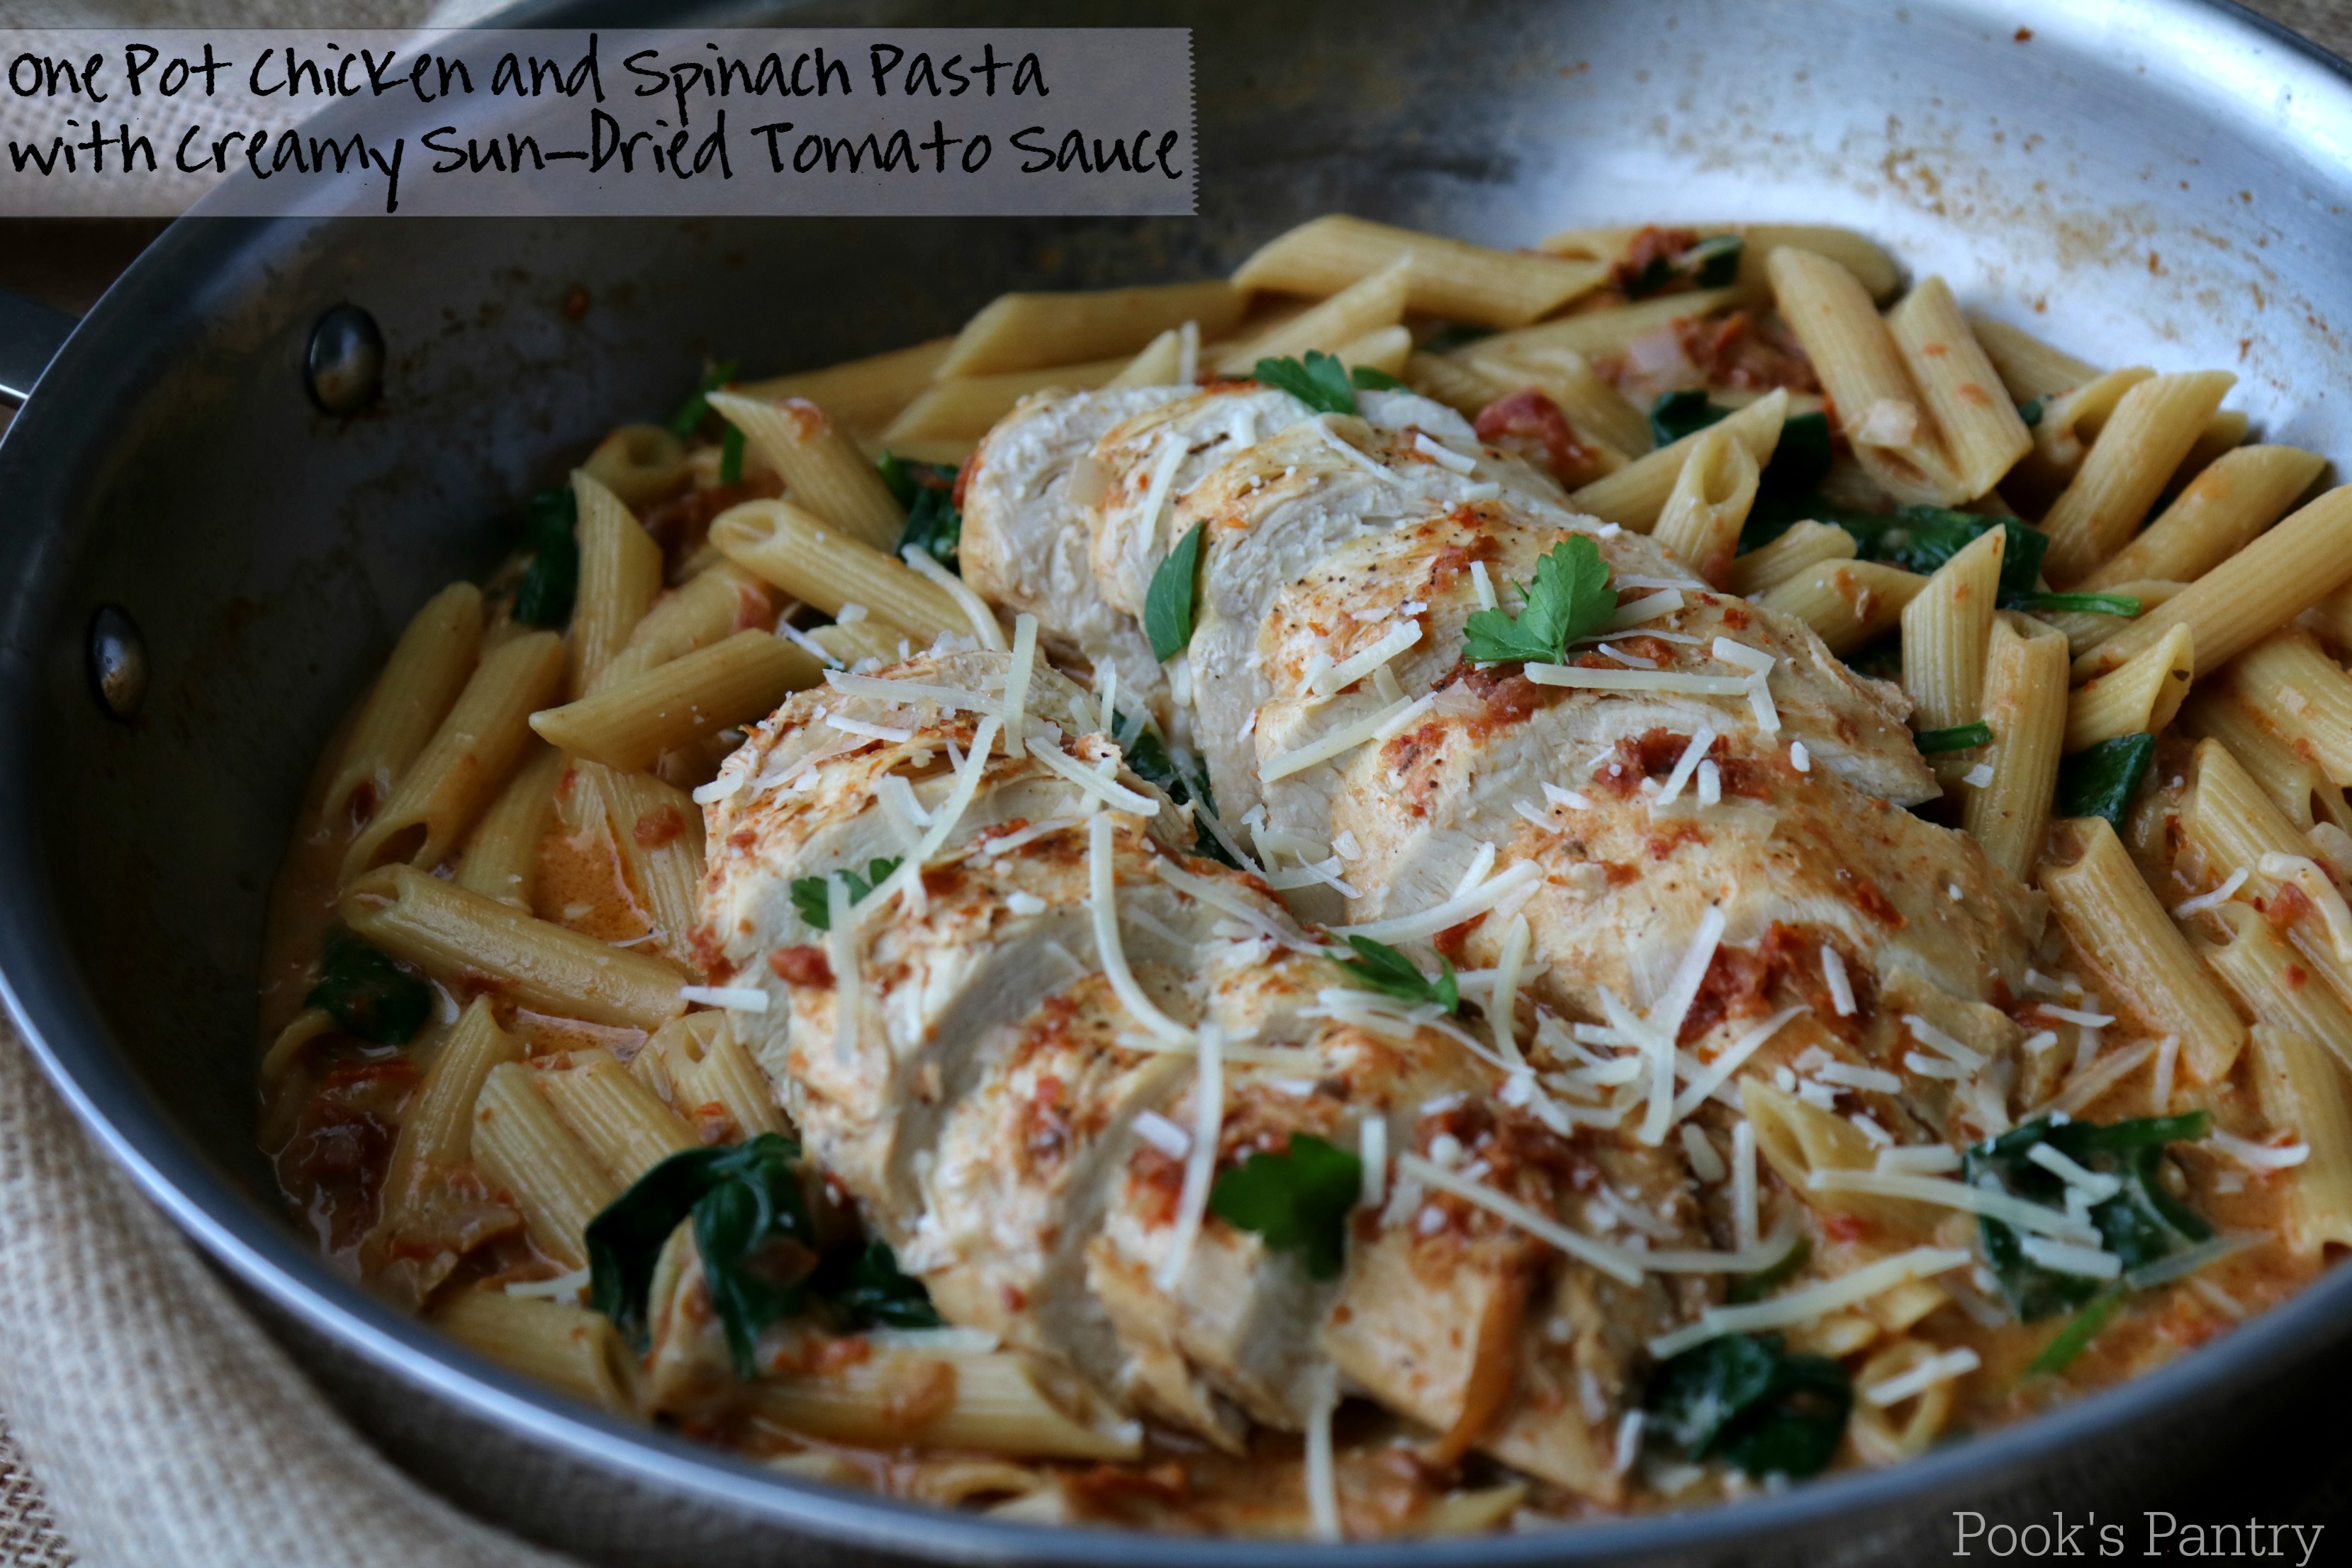 One Pot Chicken and Spinach Pasta with Sun-Dried Tomato Sauce